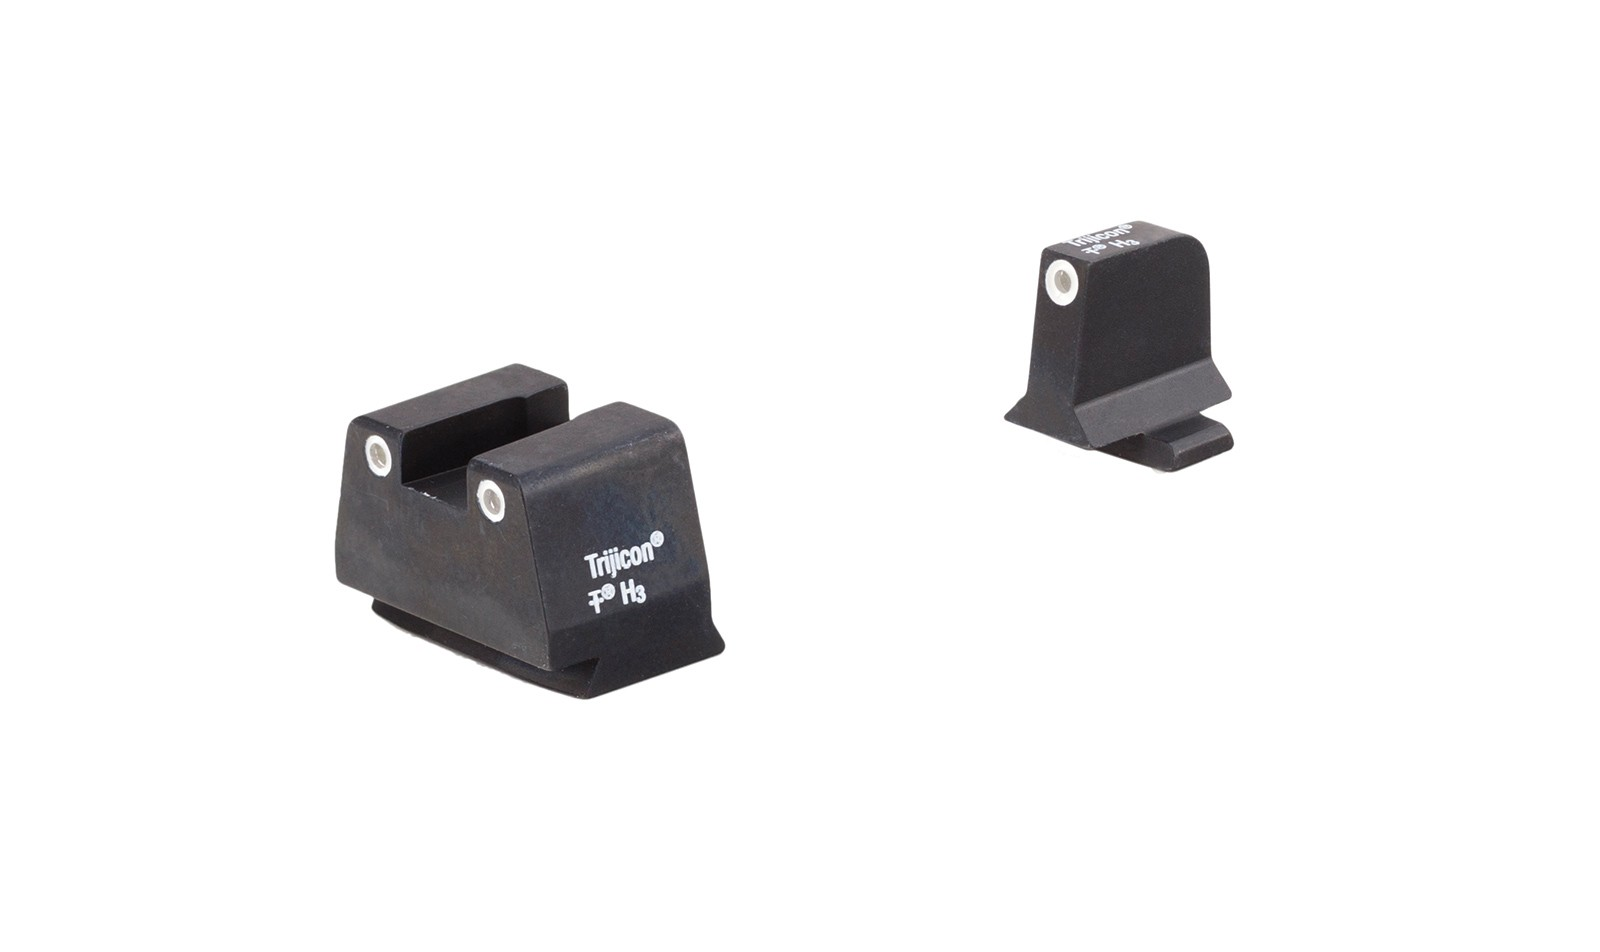 Trijicon Bright & Tough™ Suppressor Night Sights - FNS-40, FNX-40, FNP-40